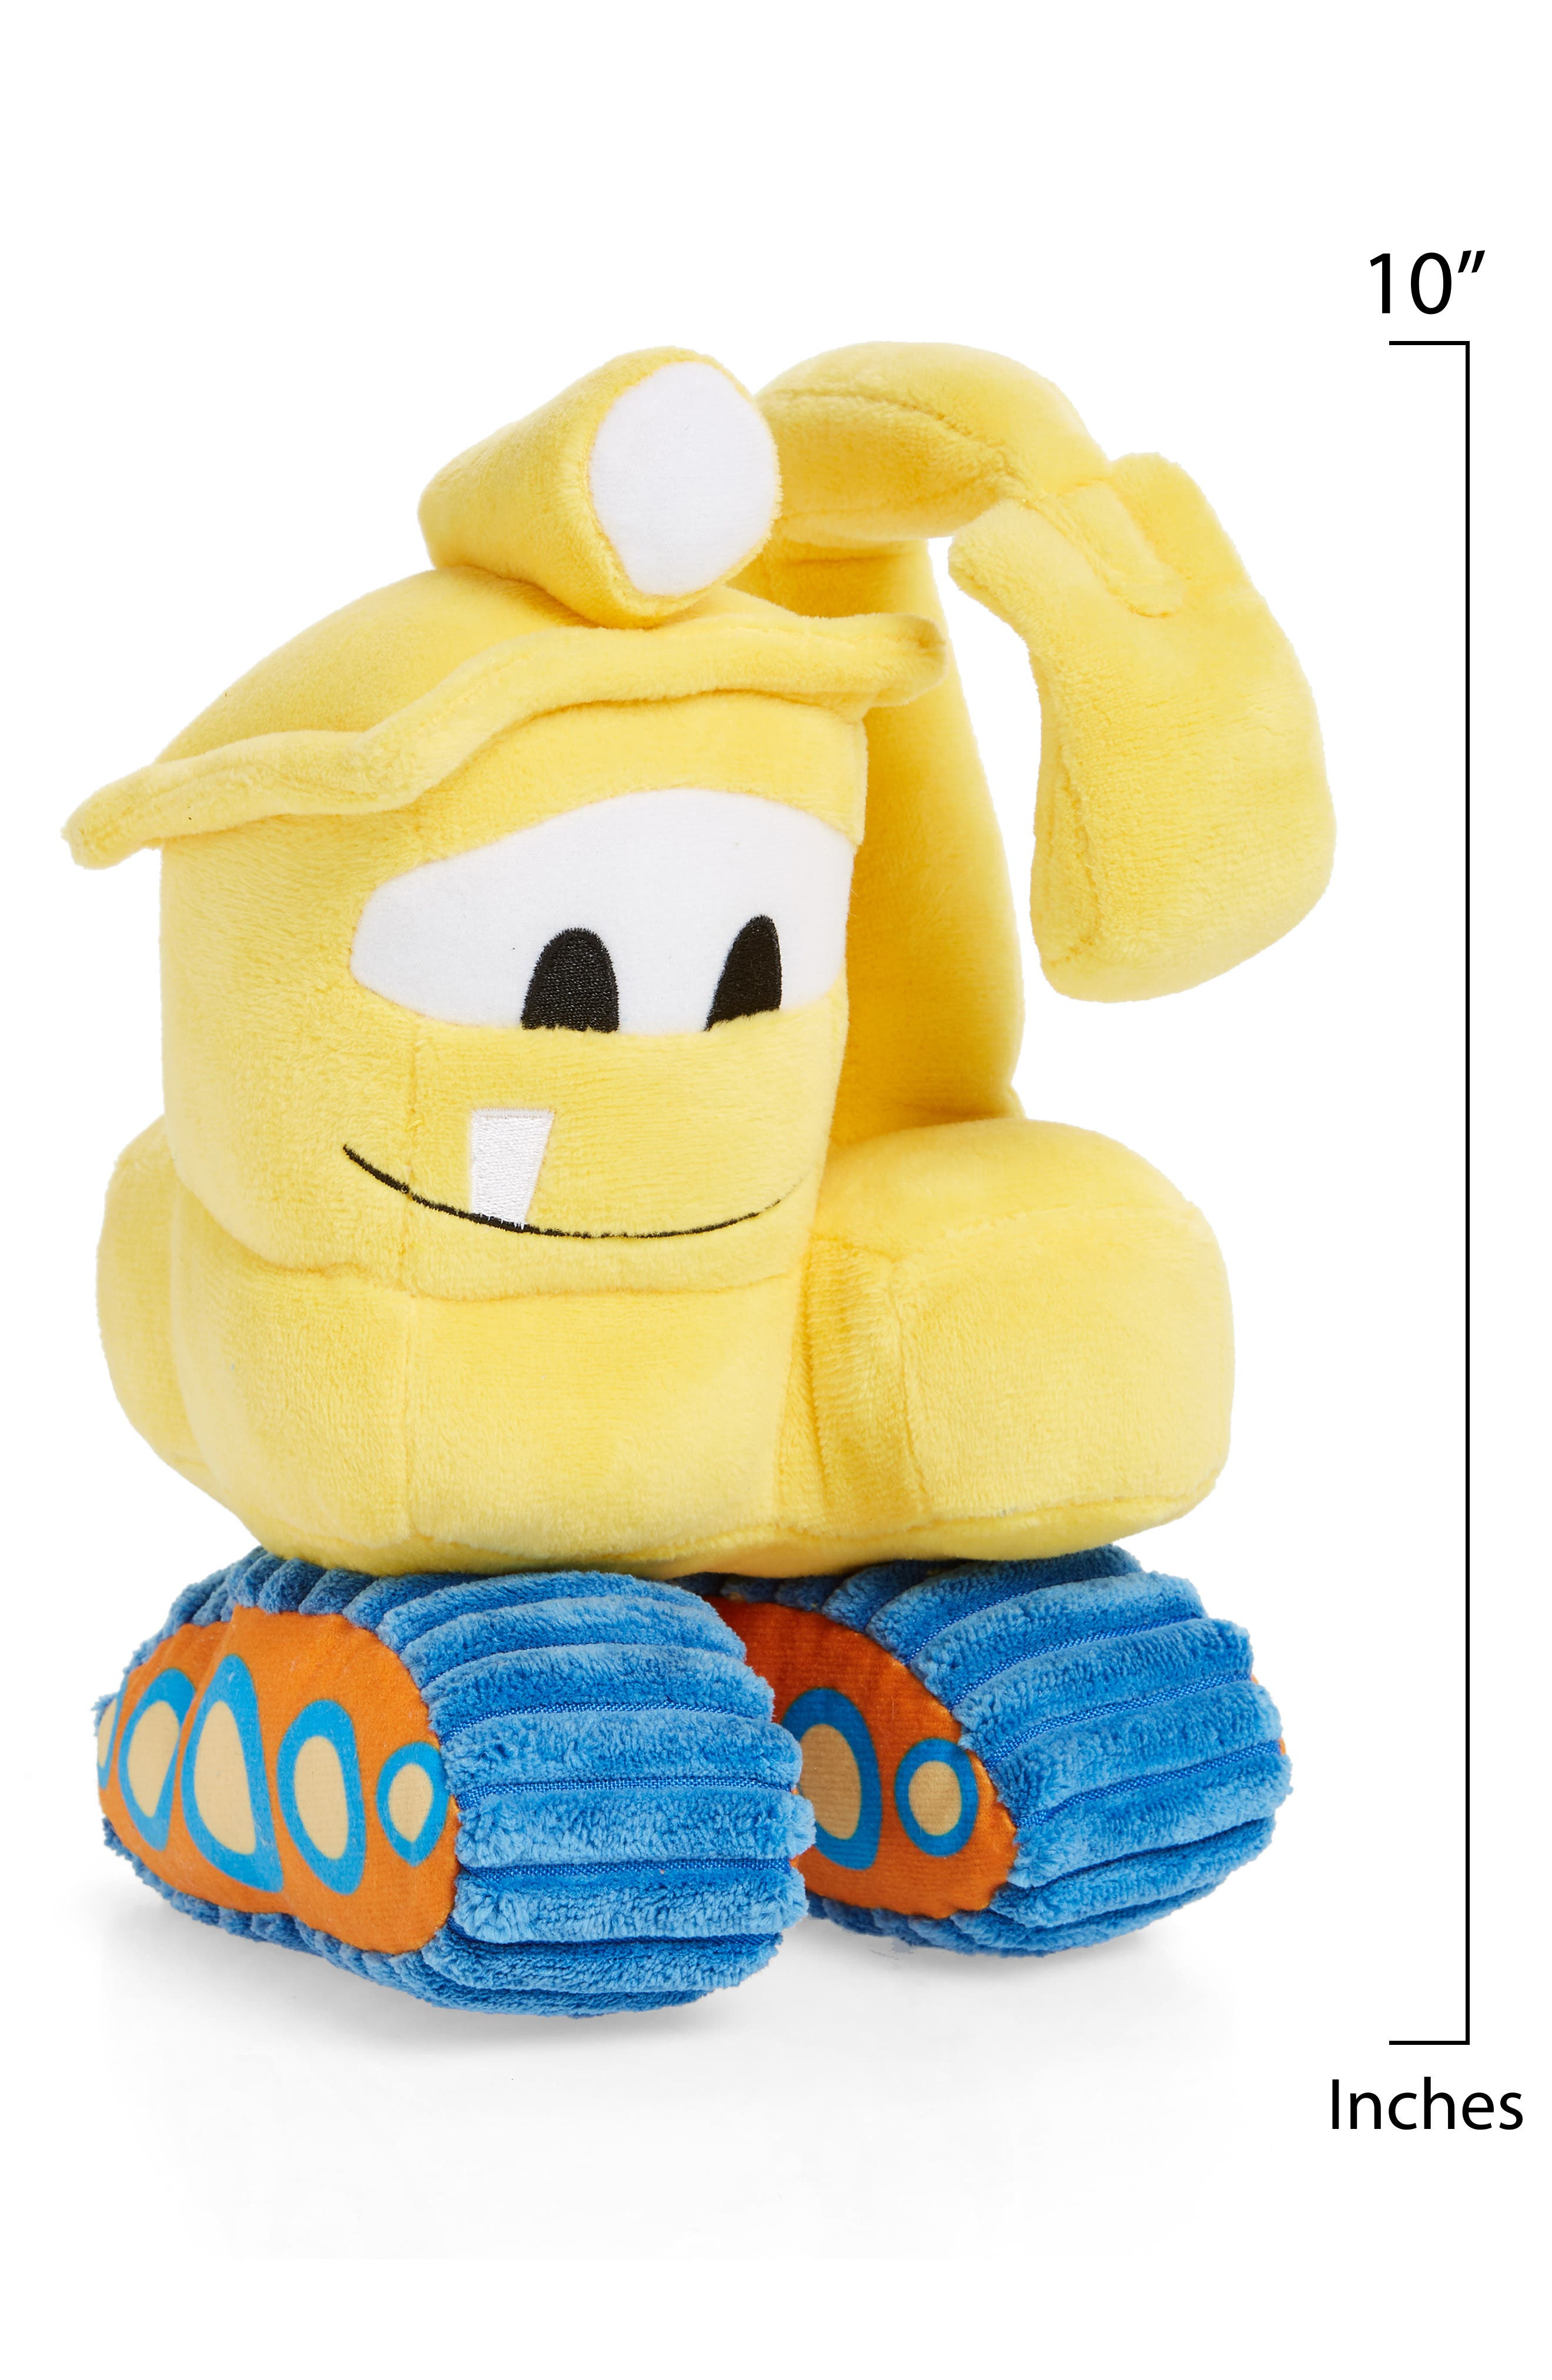 KIDS PREFERRED,                             Goodnight Goodnight, Construction Site Excavator Light-Up Plush Toy,                             Alternate thumbnail 2, color,                             700